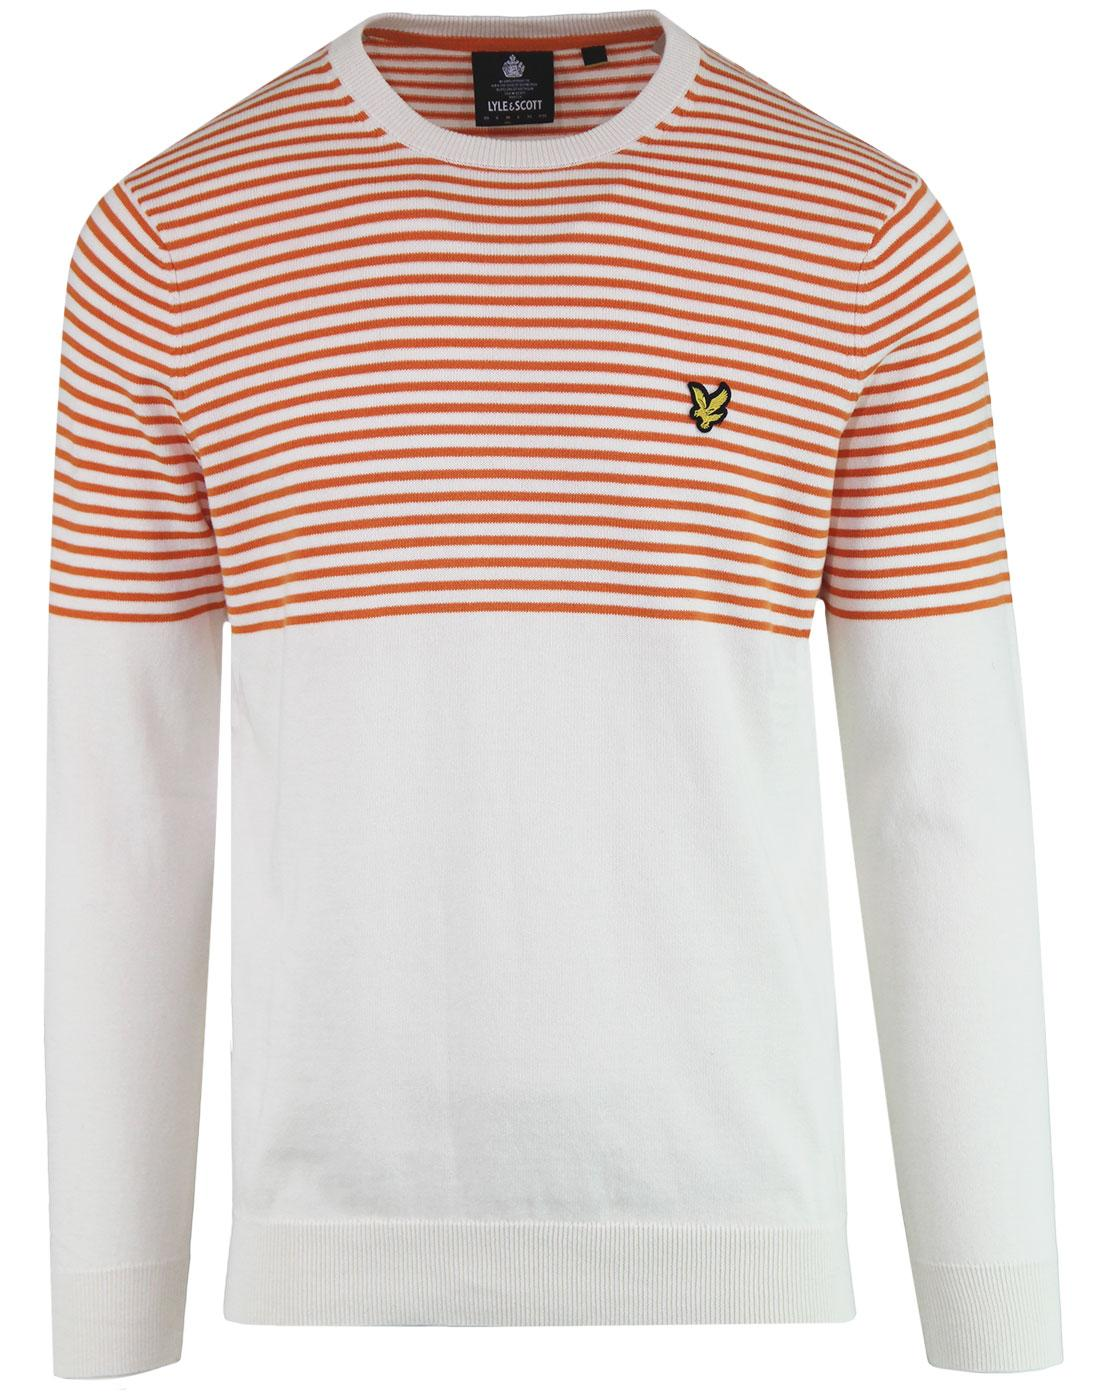 LYLE & SCOTT Retro Mod Breton Stripe Jumper (SW)